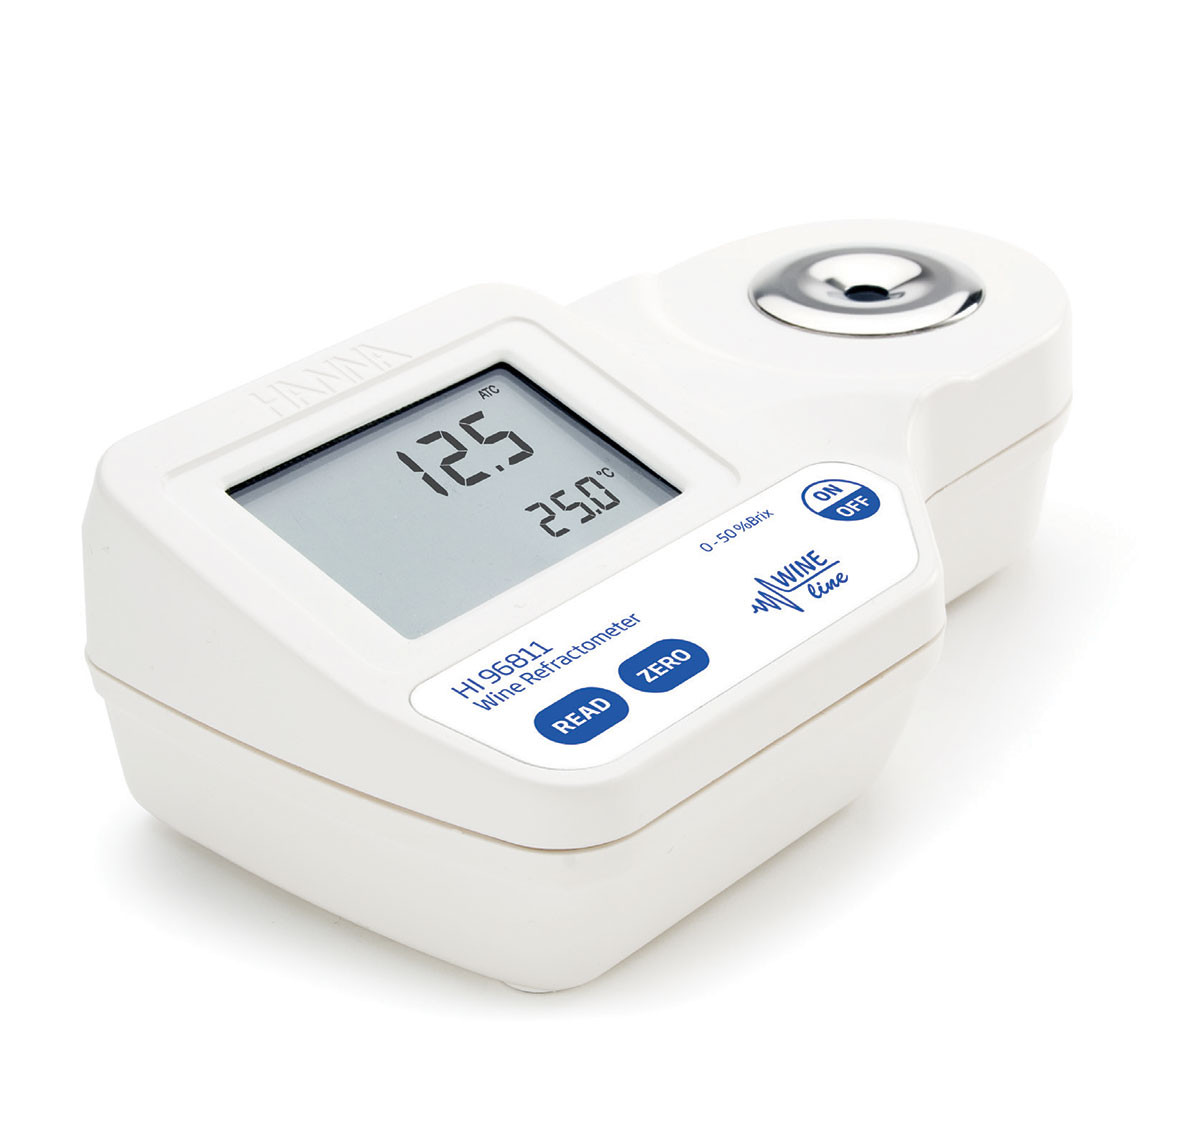 Digital Refractometer for Sugar (% Brix) Analysis in Must and Juice